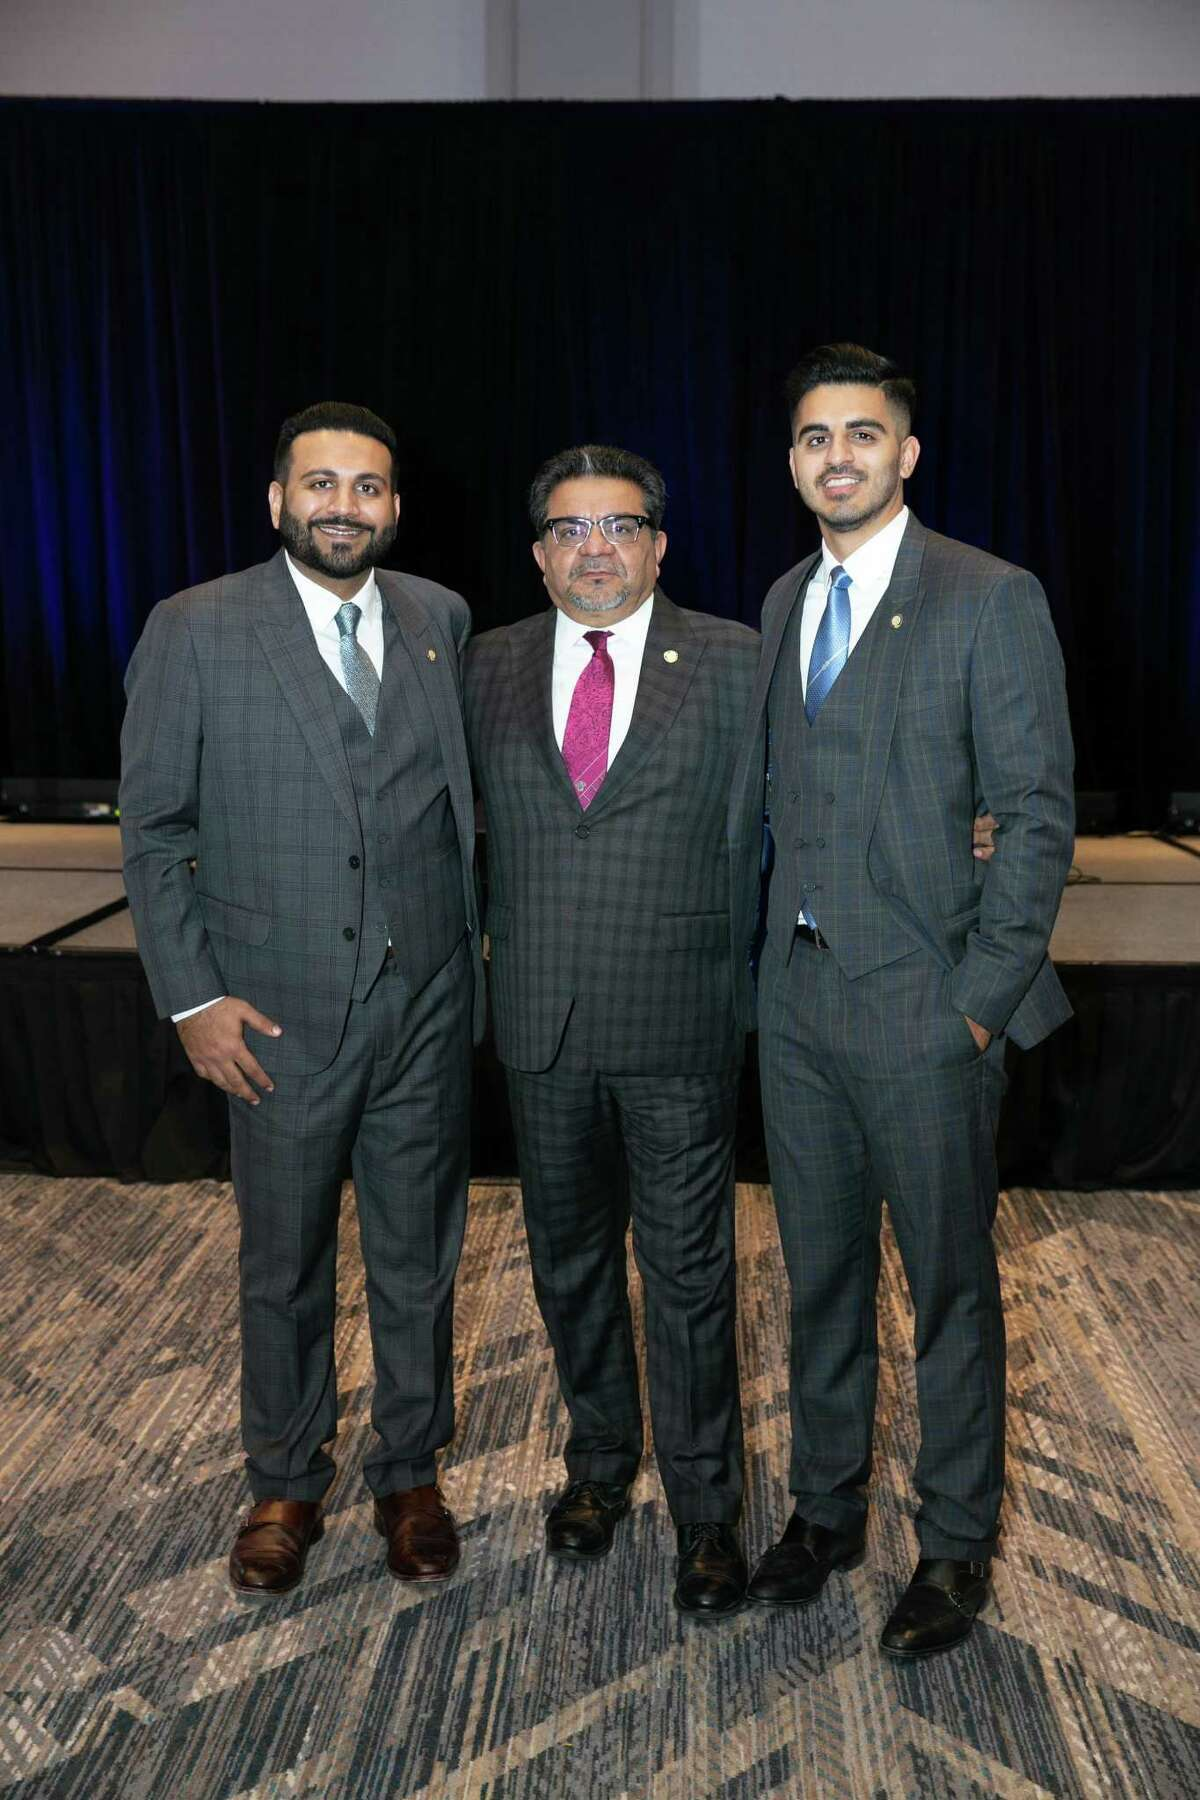 Shoukat Dhanani, CEO of the Dhanani Group, stands between his sons Zohaib to the left and Usman to his right. Their Sugar Land-headquartered firm that owns1,100 restaurants, 125 convenience stores, two multifamily developments and a wholesale fuel distributor. The company generates more than $2 billion in annual revenue.